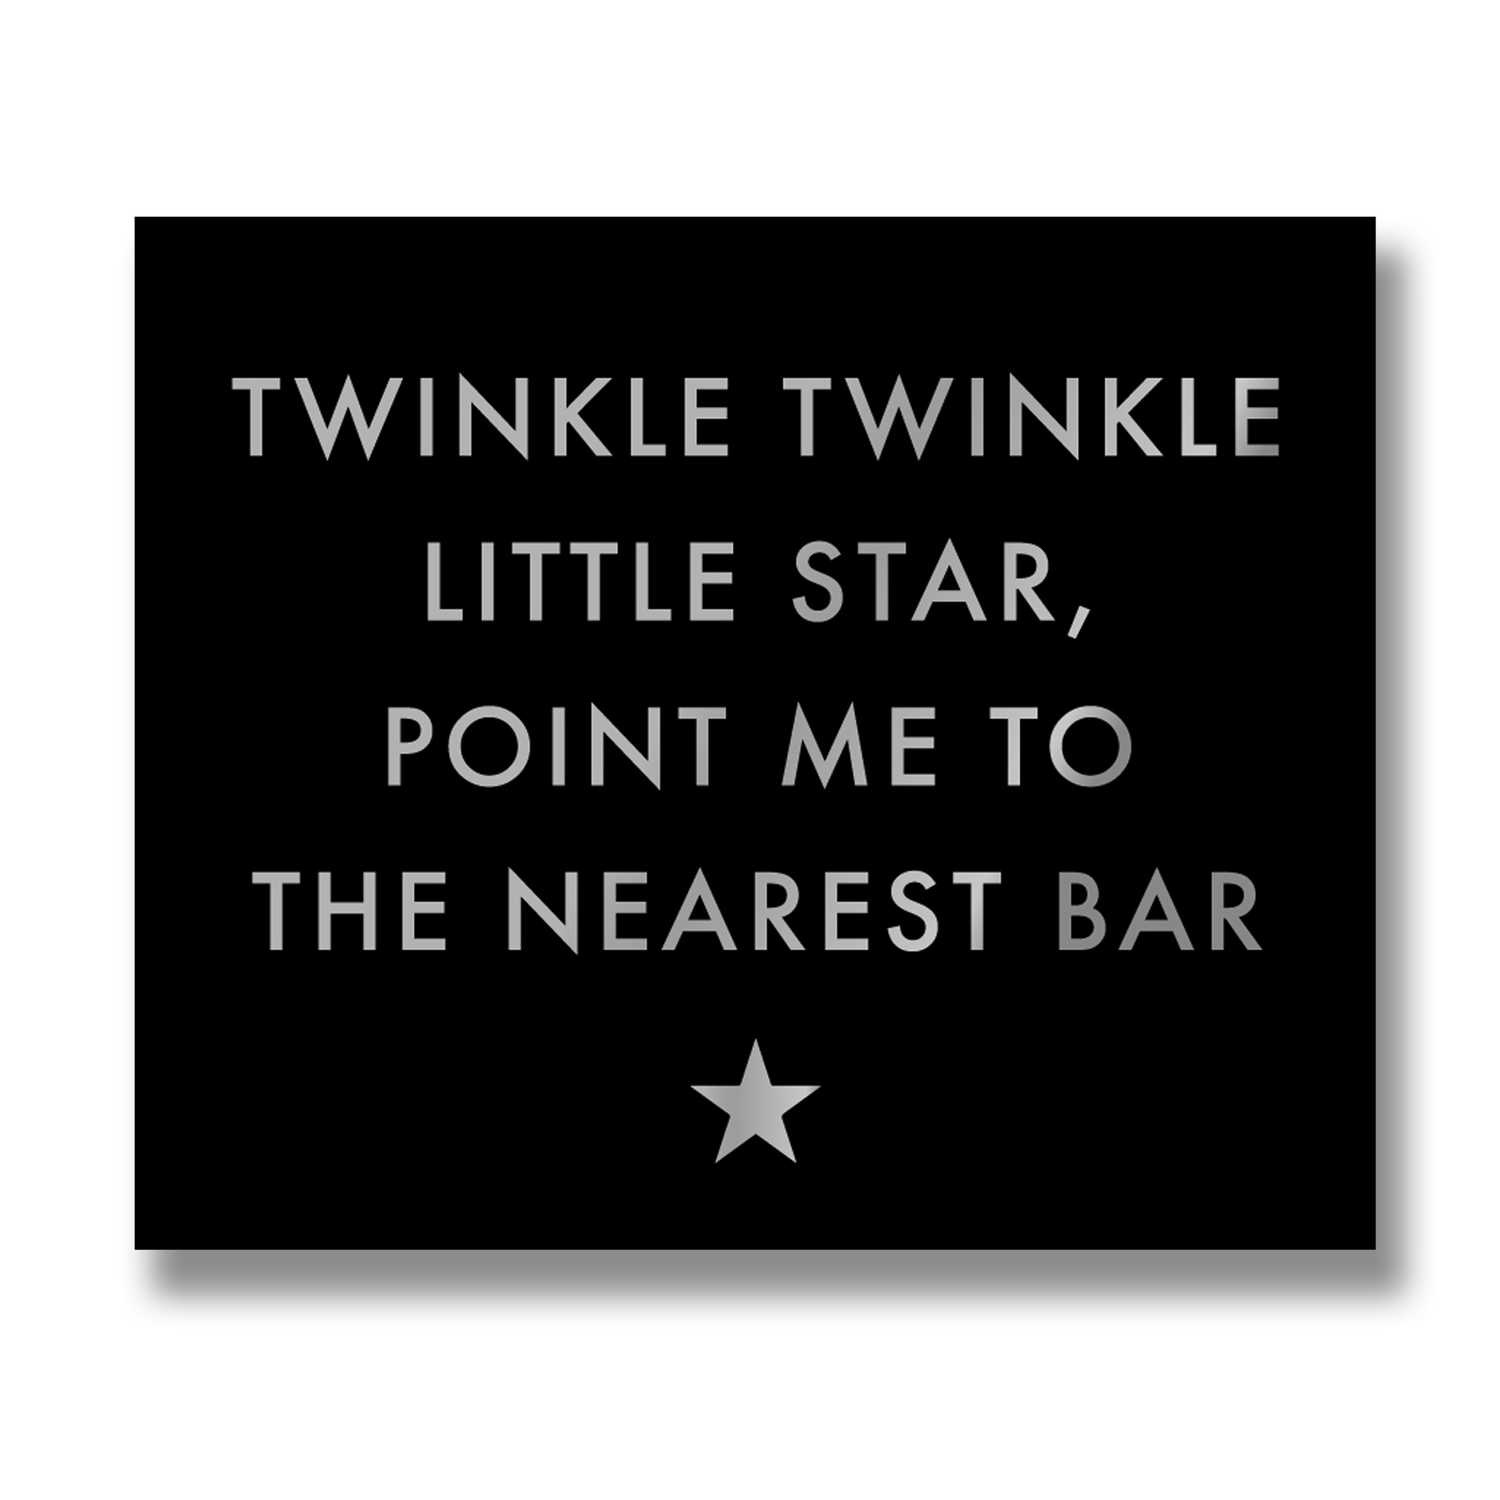 Hill Interiors 'Twinkle Twinkle' Silver Foil Plaque